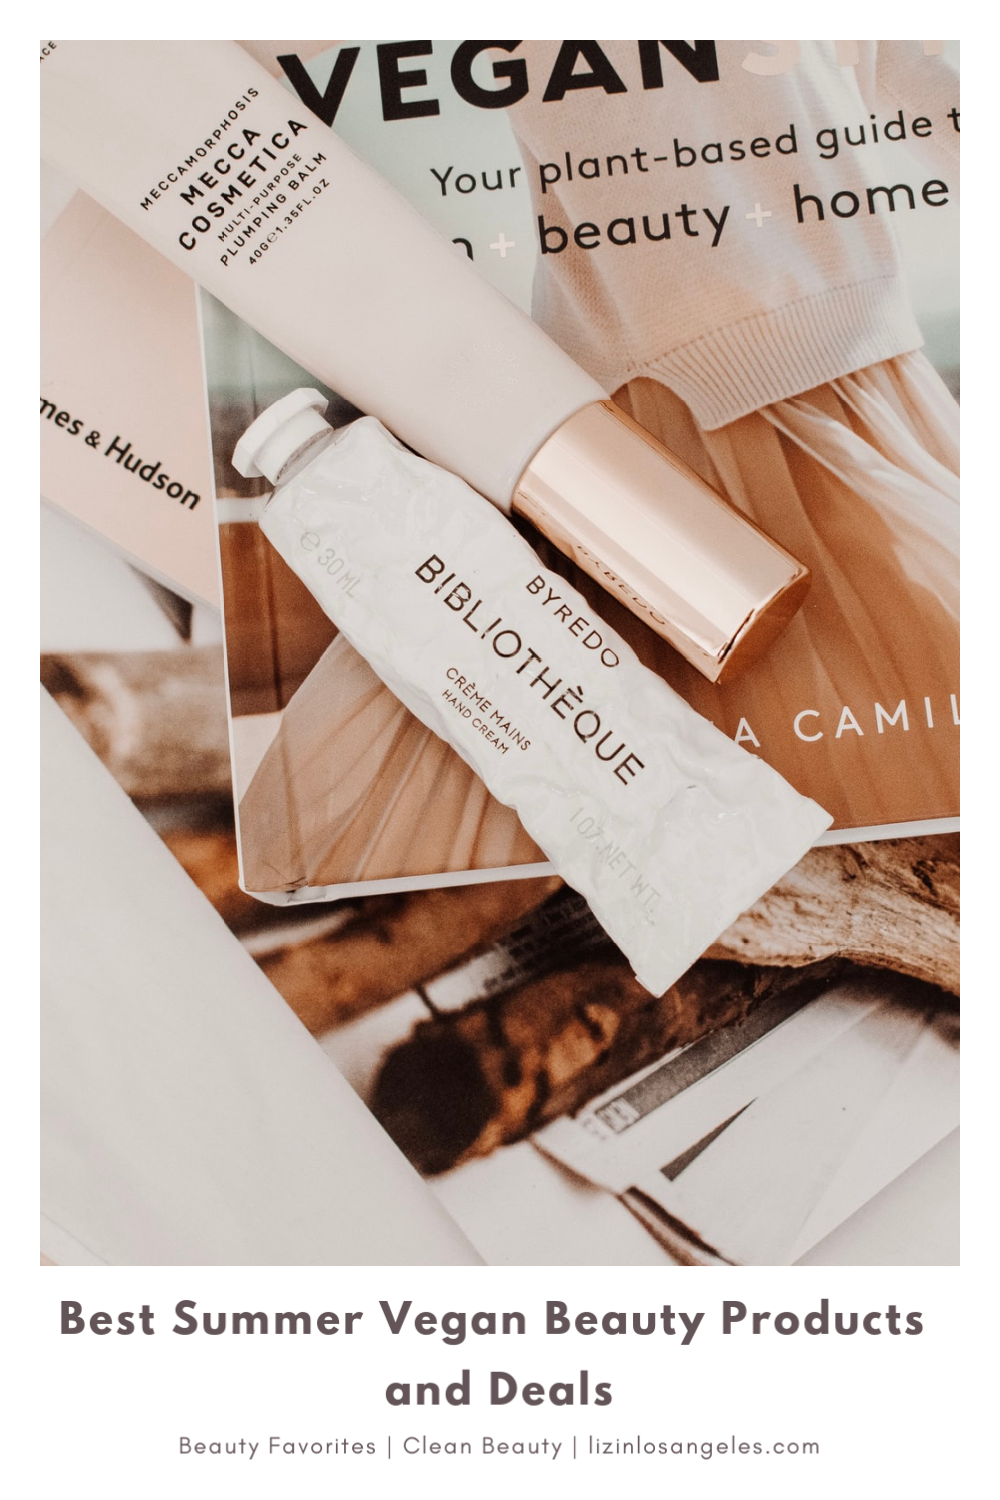 Best Summer Vegan Beauty Products and Deals, a blog post by Liz in Los Angeles, Los Angeles Lifestyle Blogger, an image of vegan beauty products